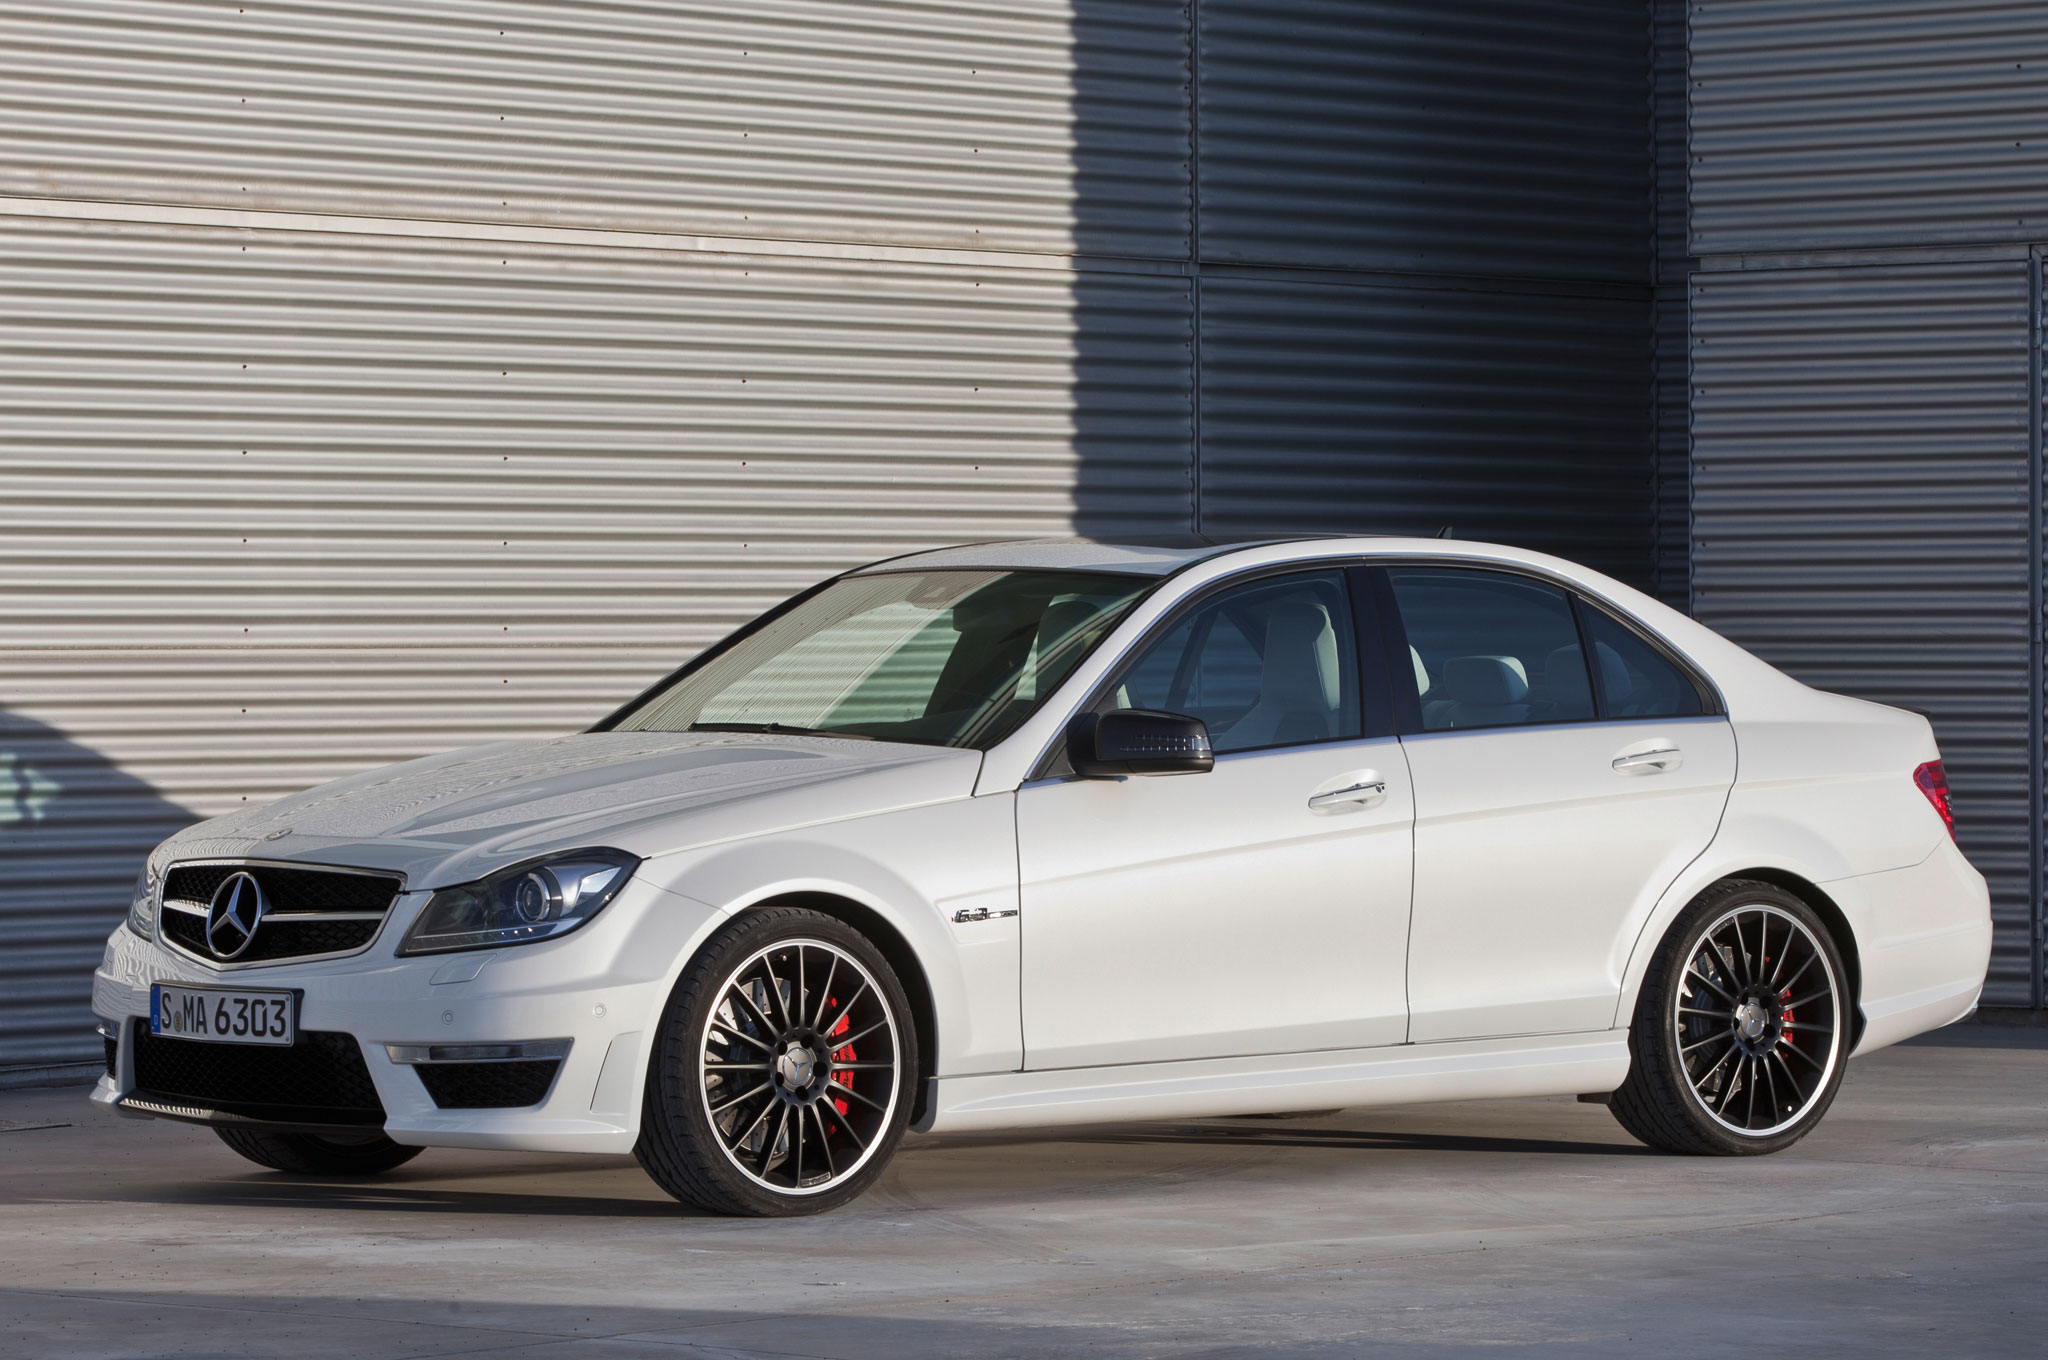 2012 mercedes benz c63 amg coupe black series editors 39 notebook automobile magazine - 2012 mercedes c63 amg coupe ...